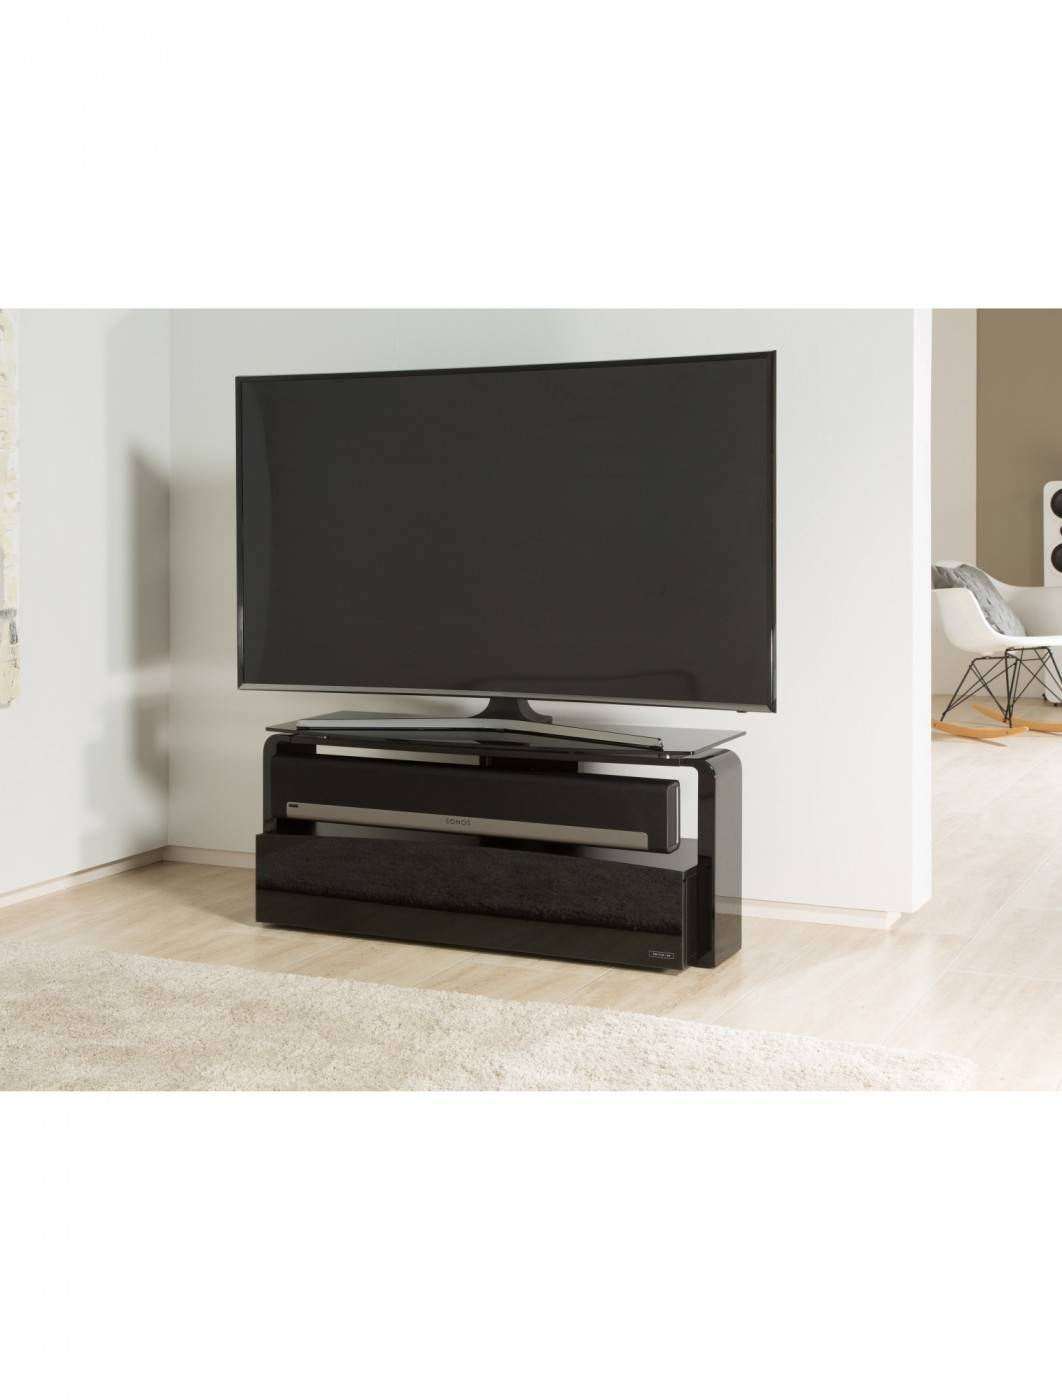 Alphason Sonos Playbar Tv Stand As9001 | 121 Tv Mounts Inside Sonos Tv Stands (View 3 of 15)